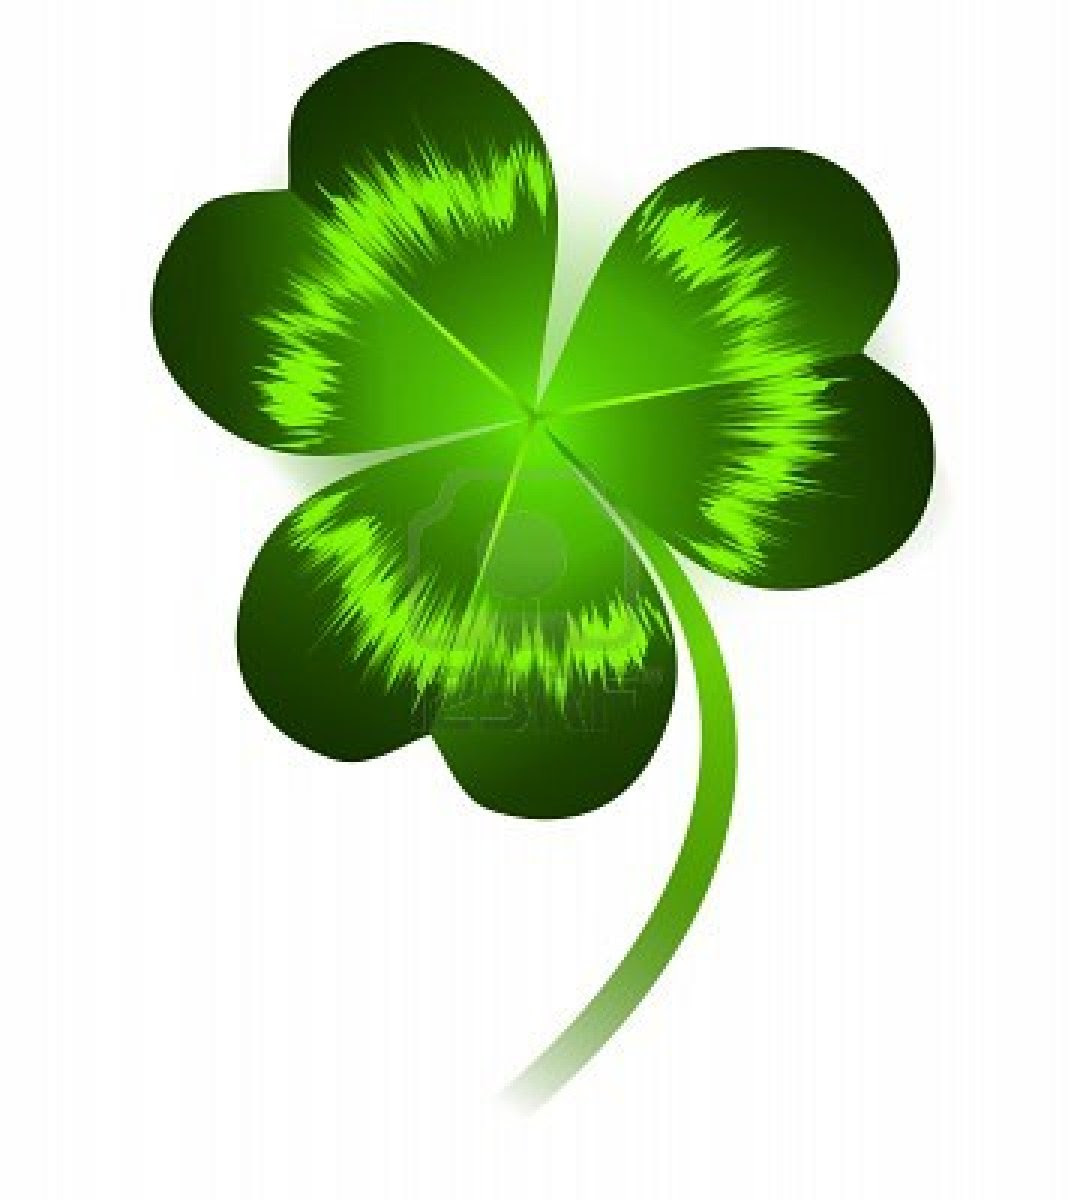 Three Leaf Clover Clipart At Getdrawingscom Free For Personal Use